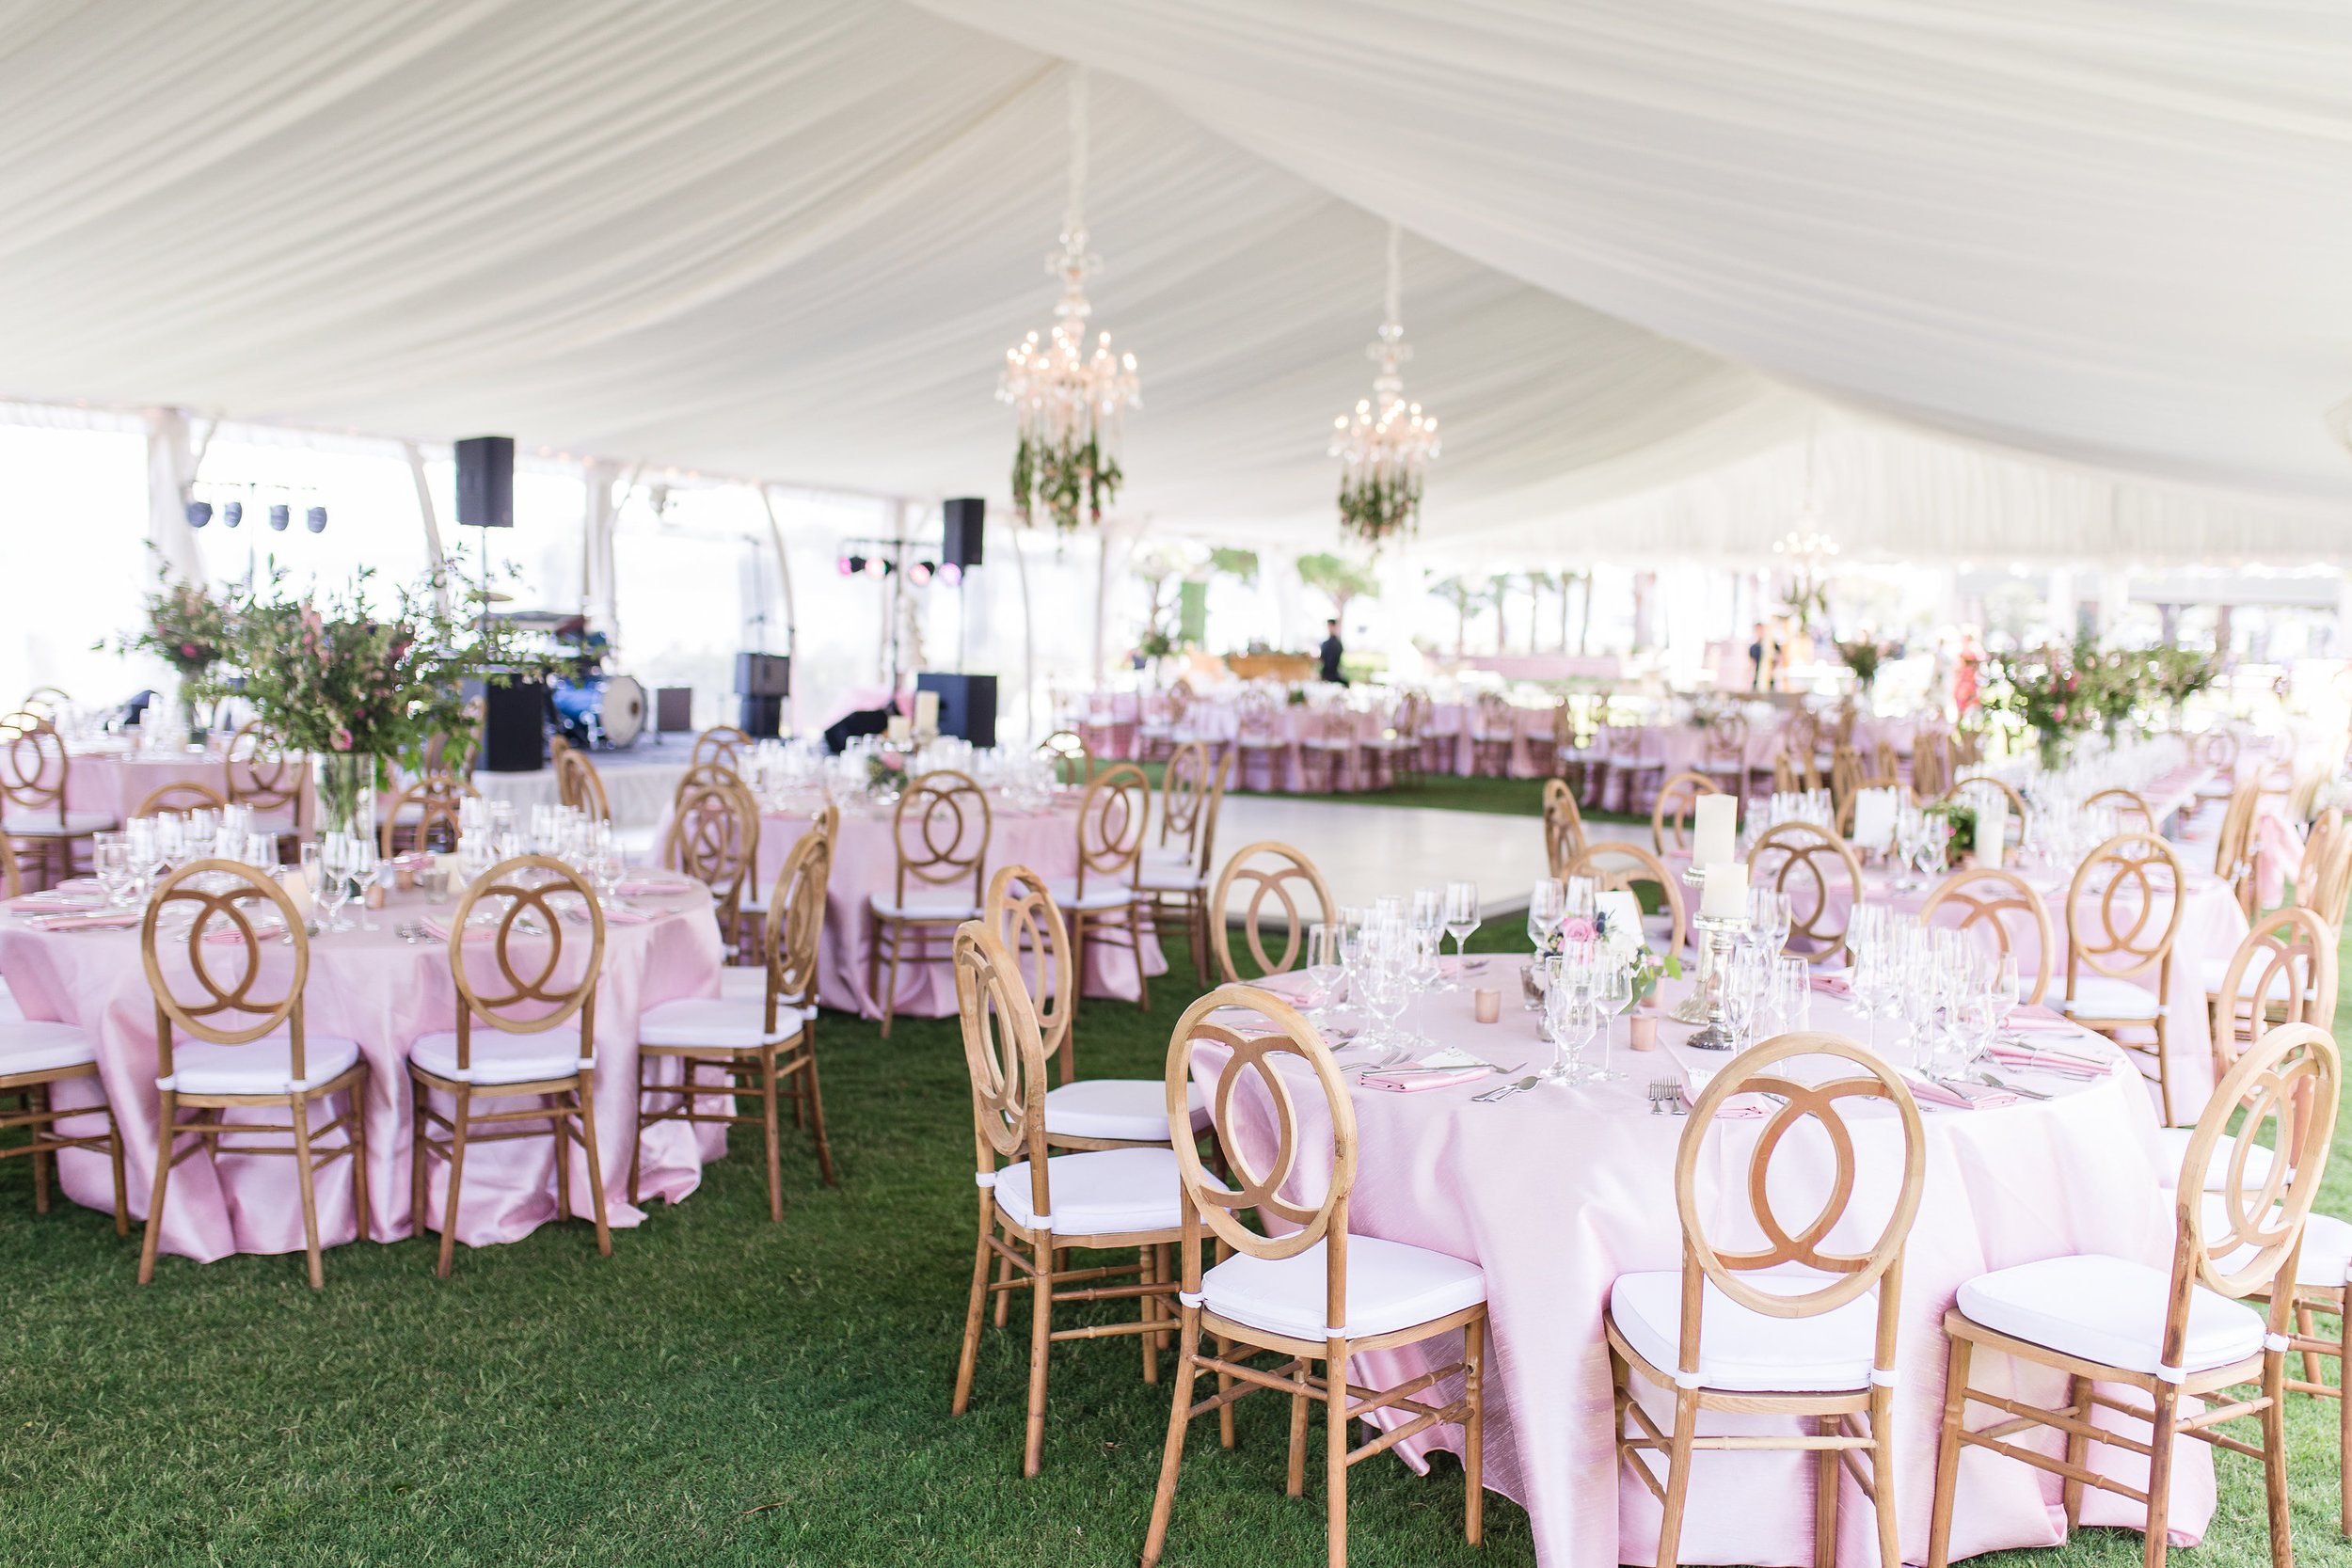 Hilton Head wedding decor at Henry C. Chambers Waterfront Park   //  A Lowcountry Wedding Magazine